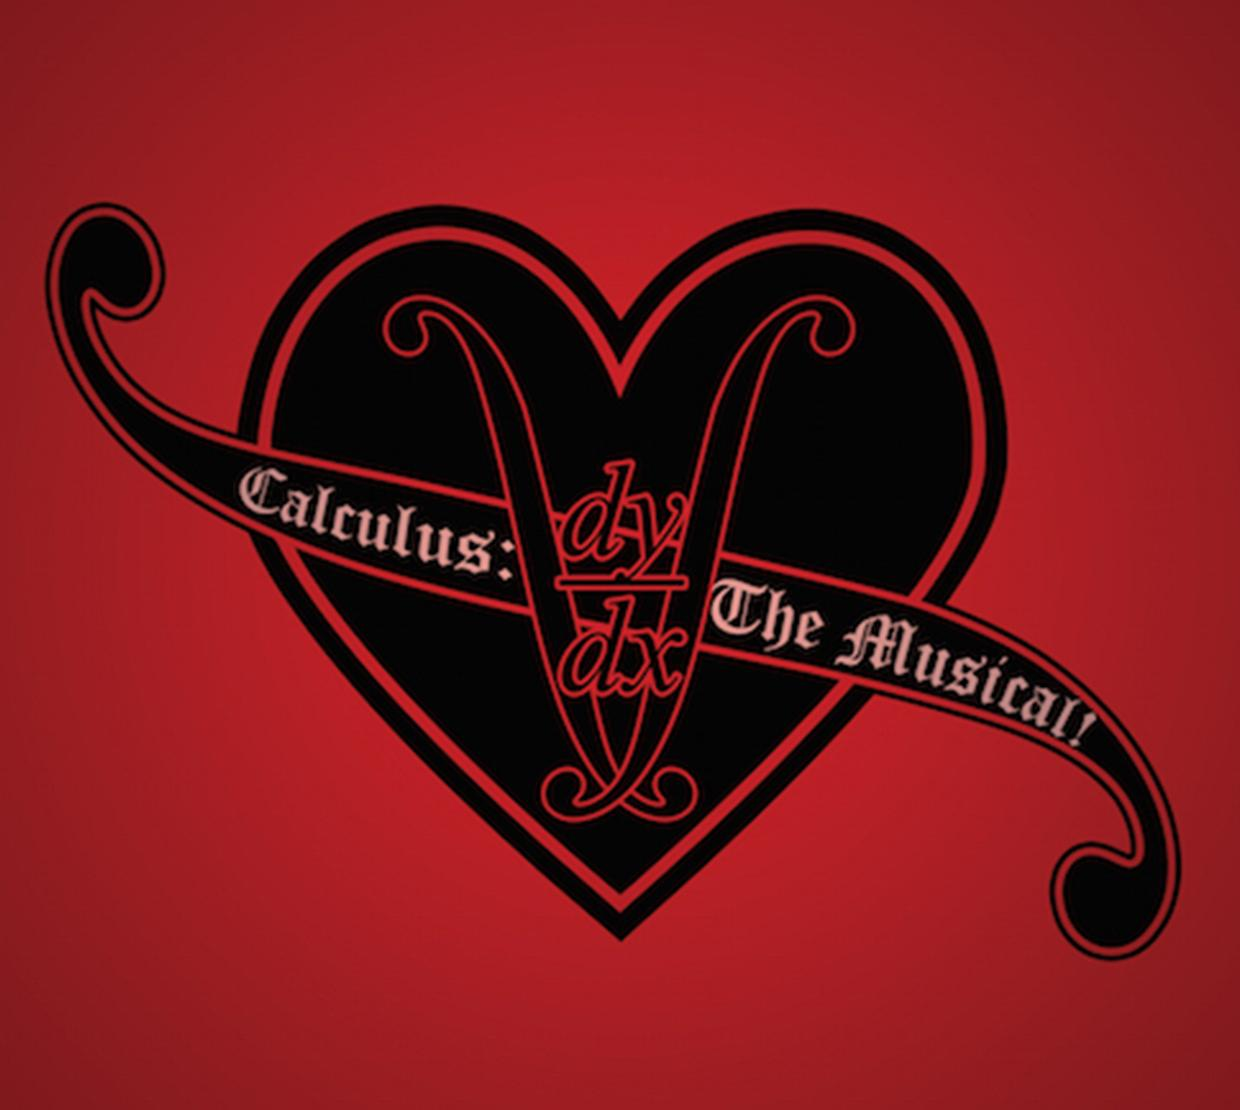 Calculus the musical logo with black and red heart and banner